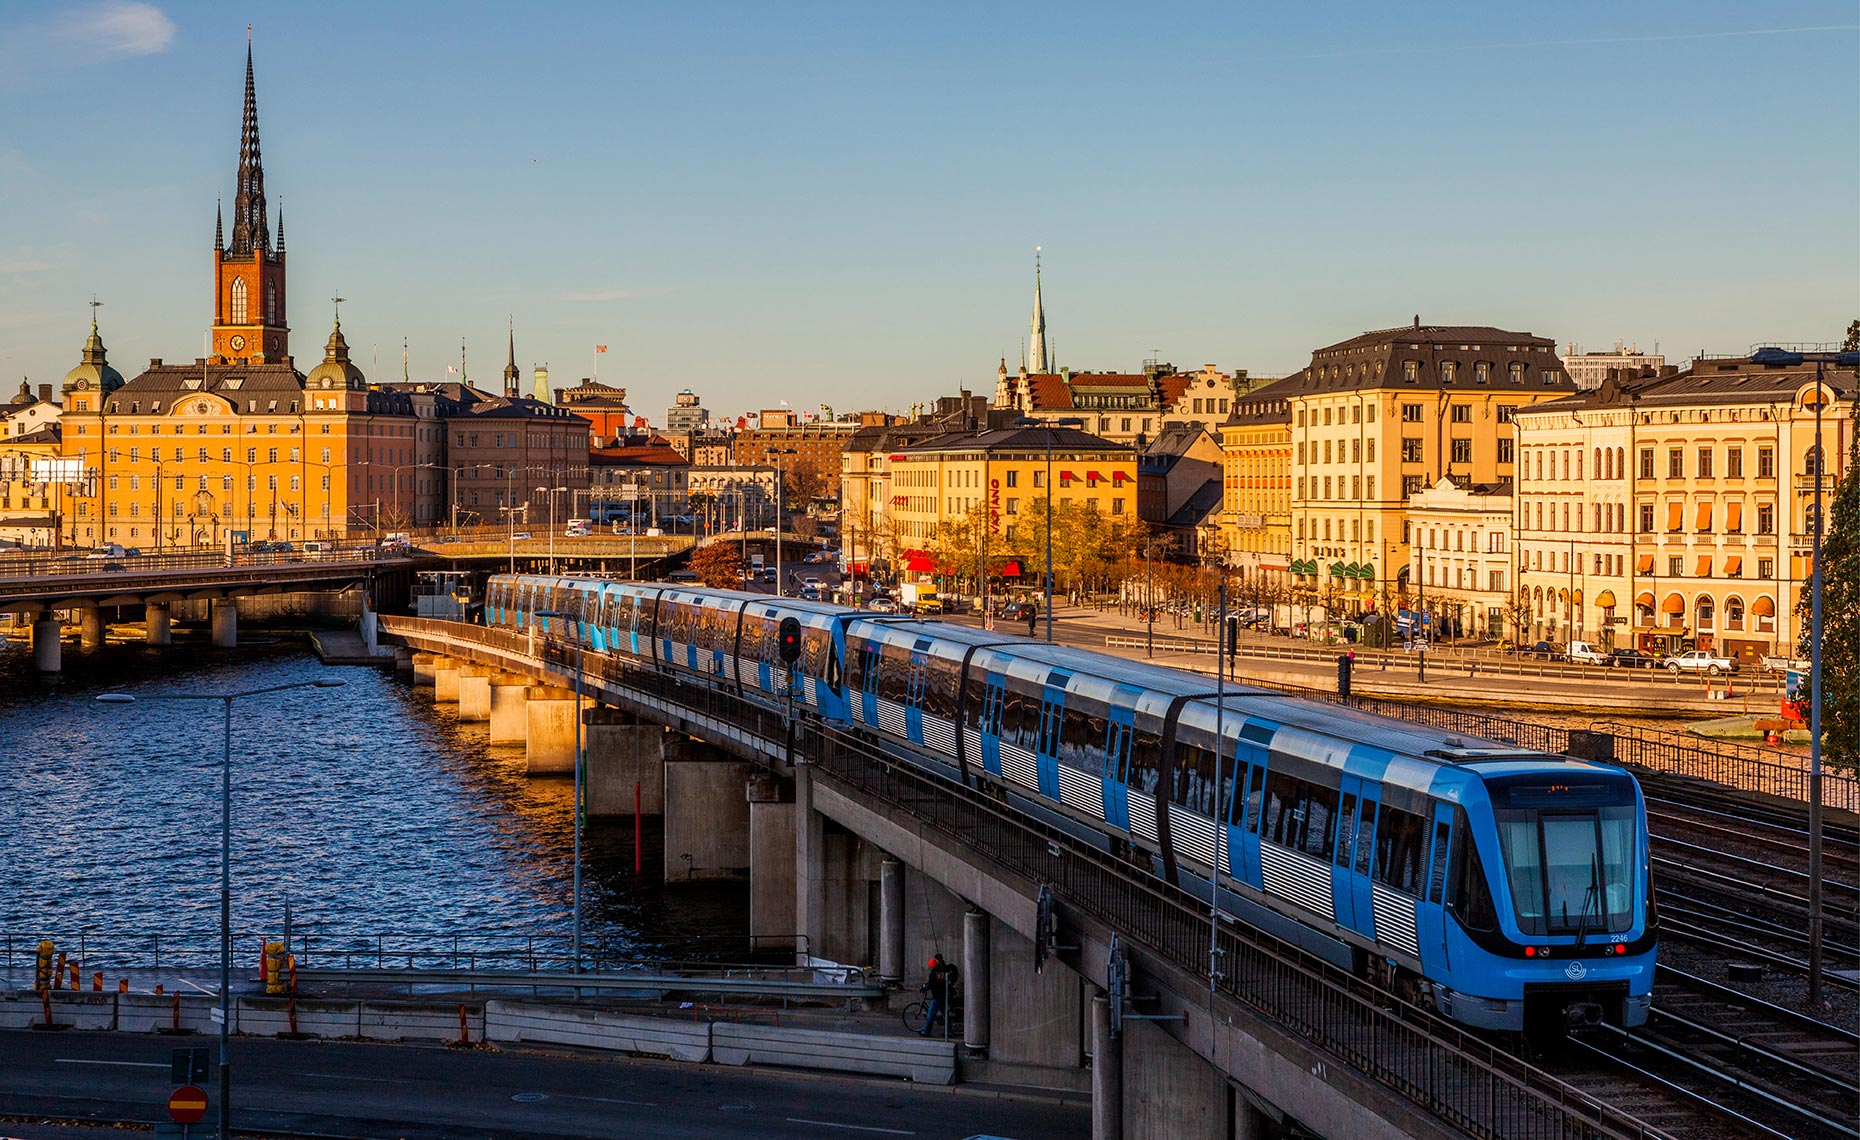 44_Stockholm_Sweden_Downtown_Environment_Landscape_Chris_Wellhausen_Photography.JPG